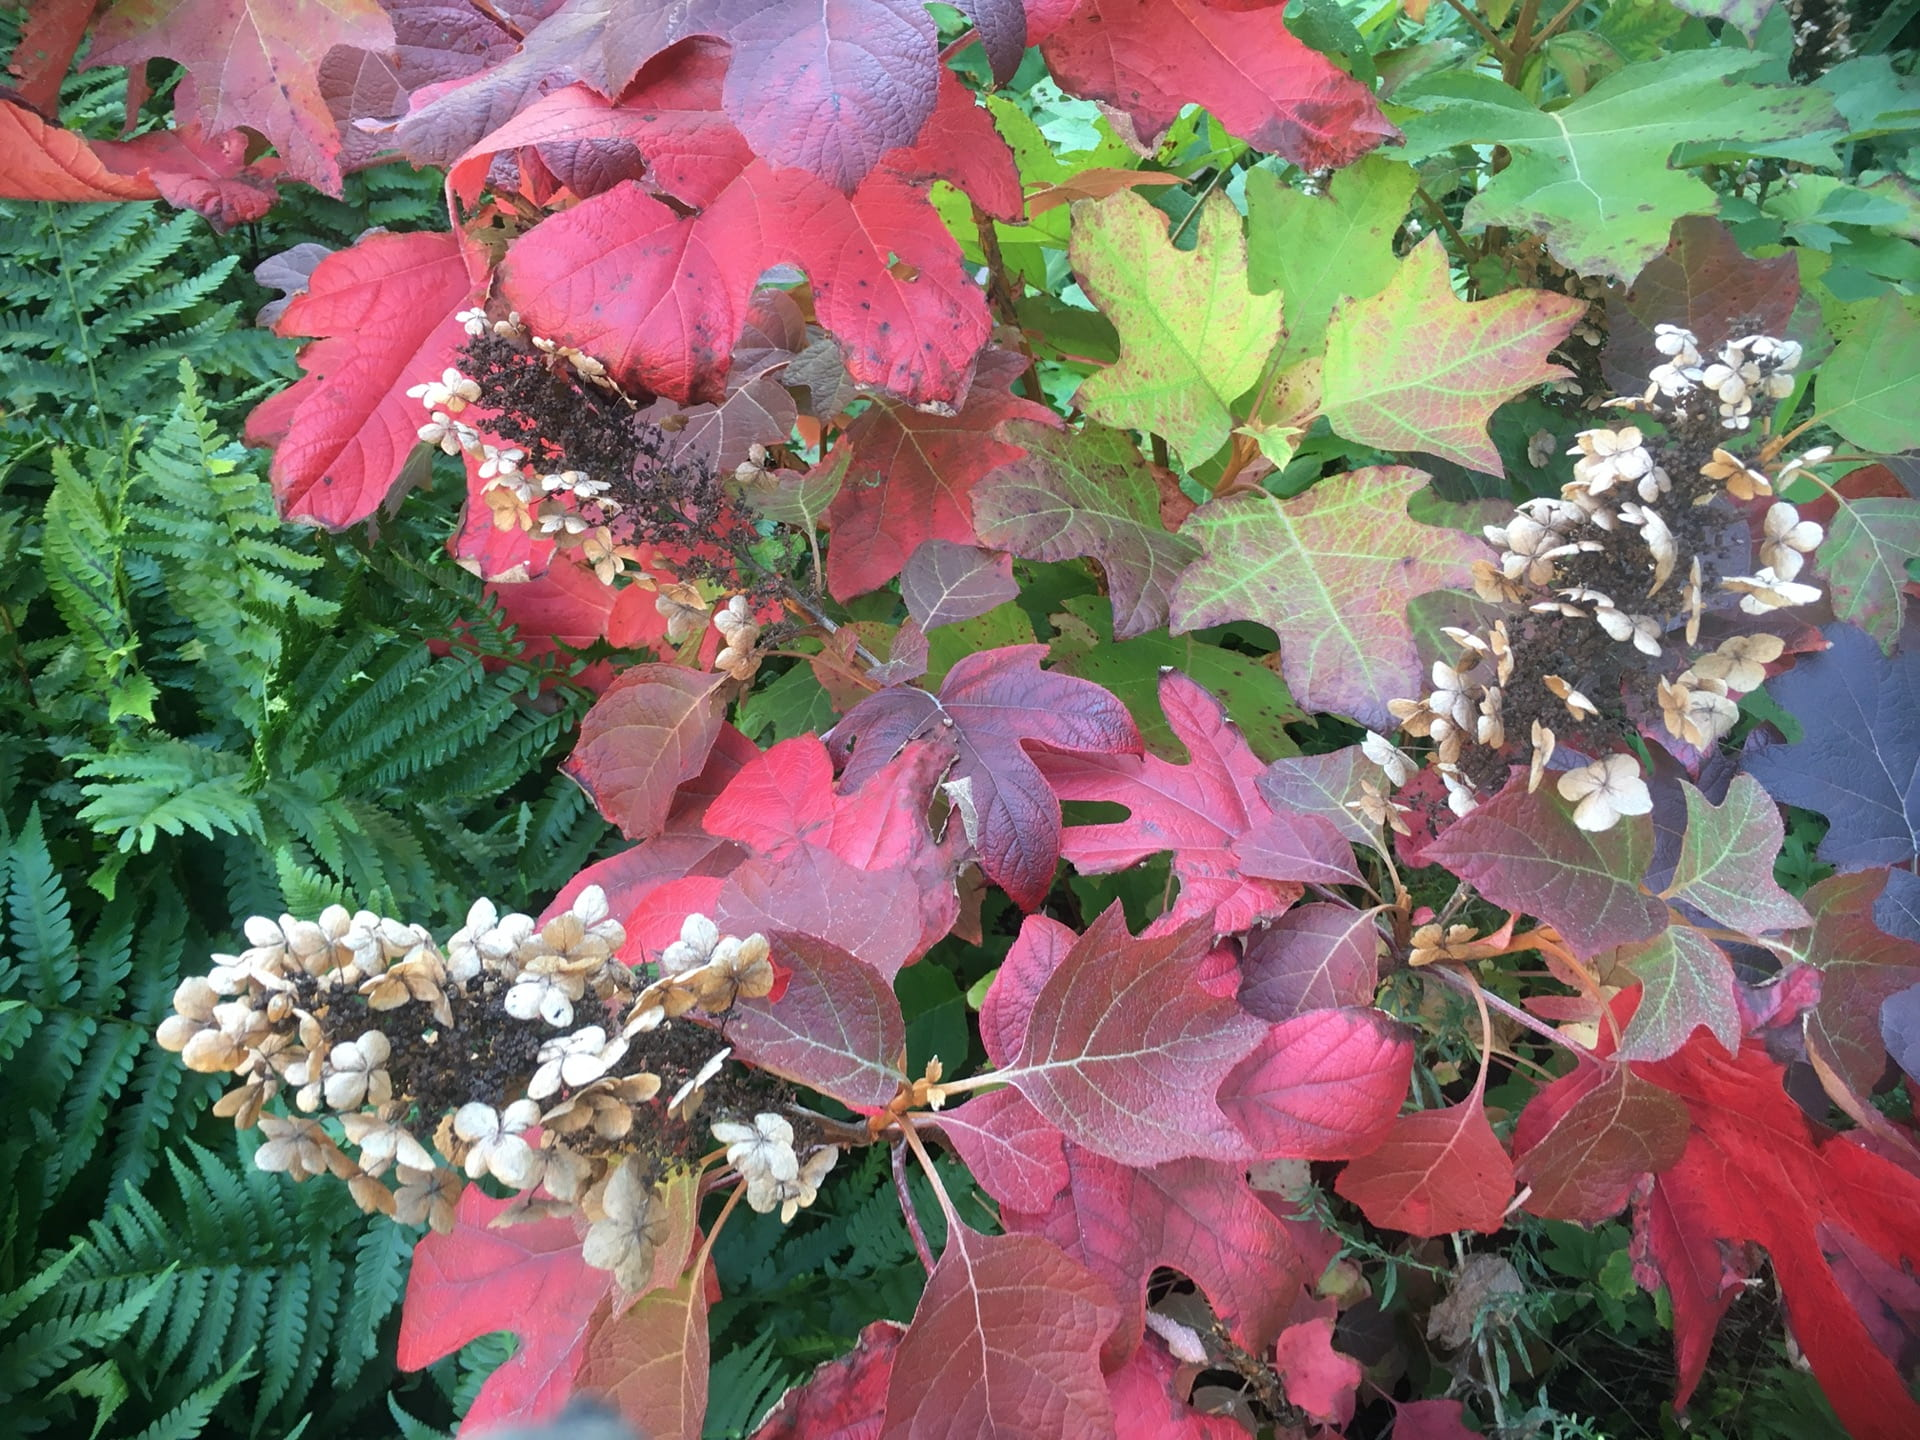 The fall color and long lasting flowers of Hydrangea Quercifolia makes this native shrub an invaluable inhabitant of the park.